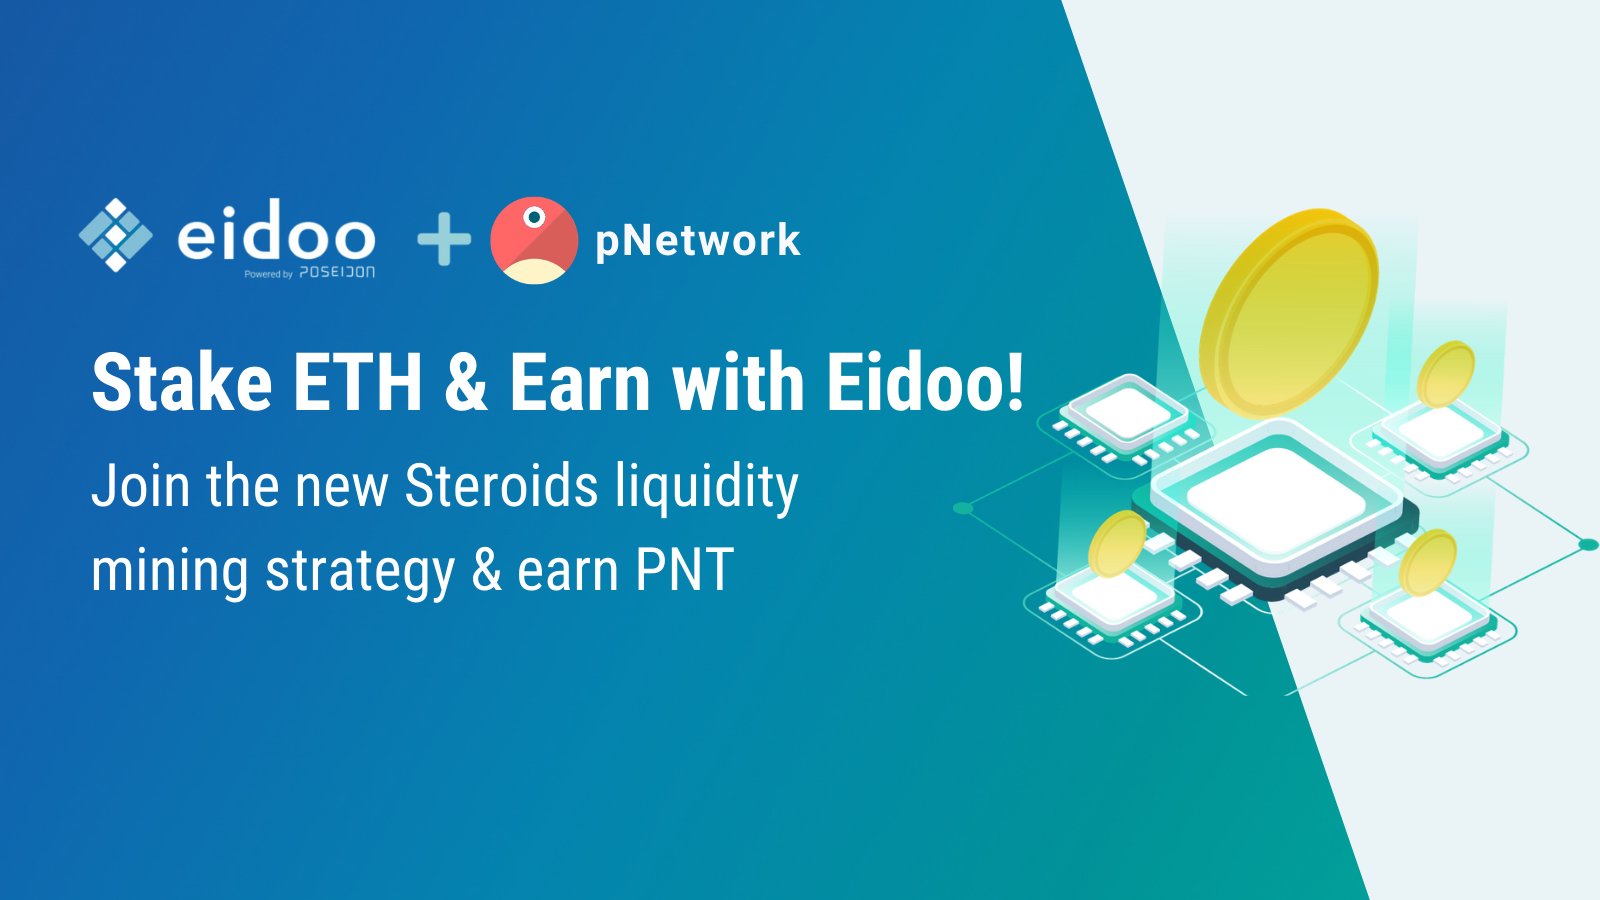 Stake ETH and Earn rewards with Eidoo